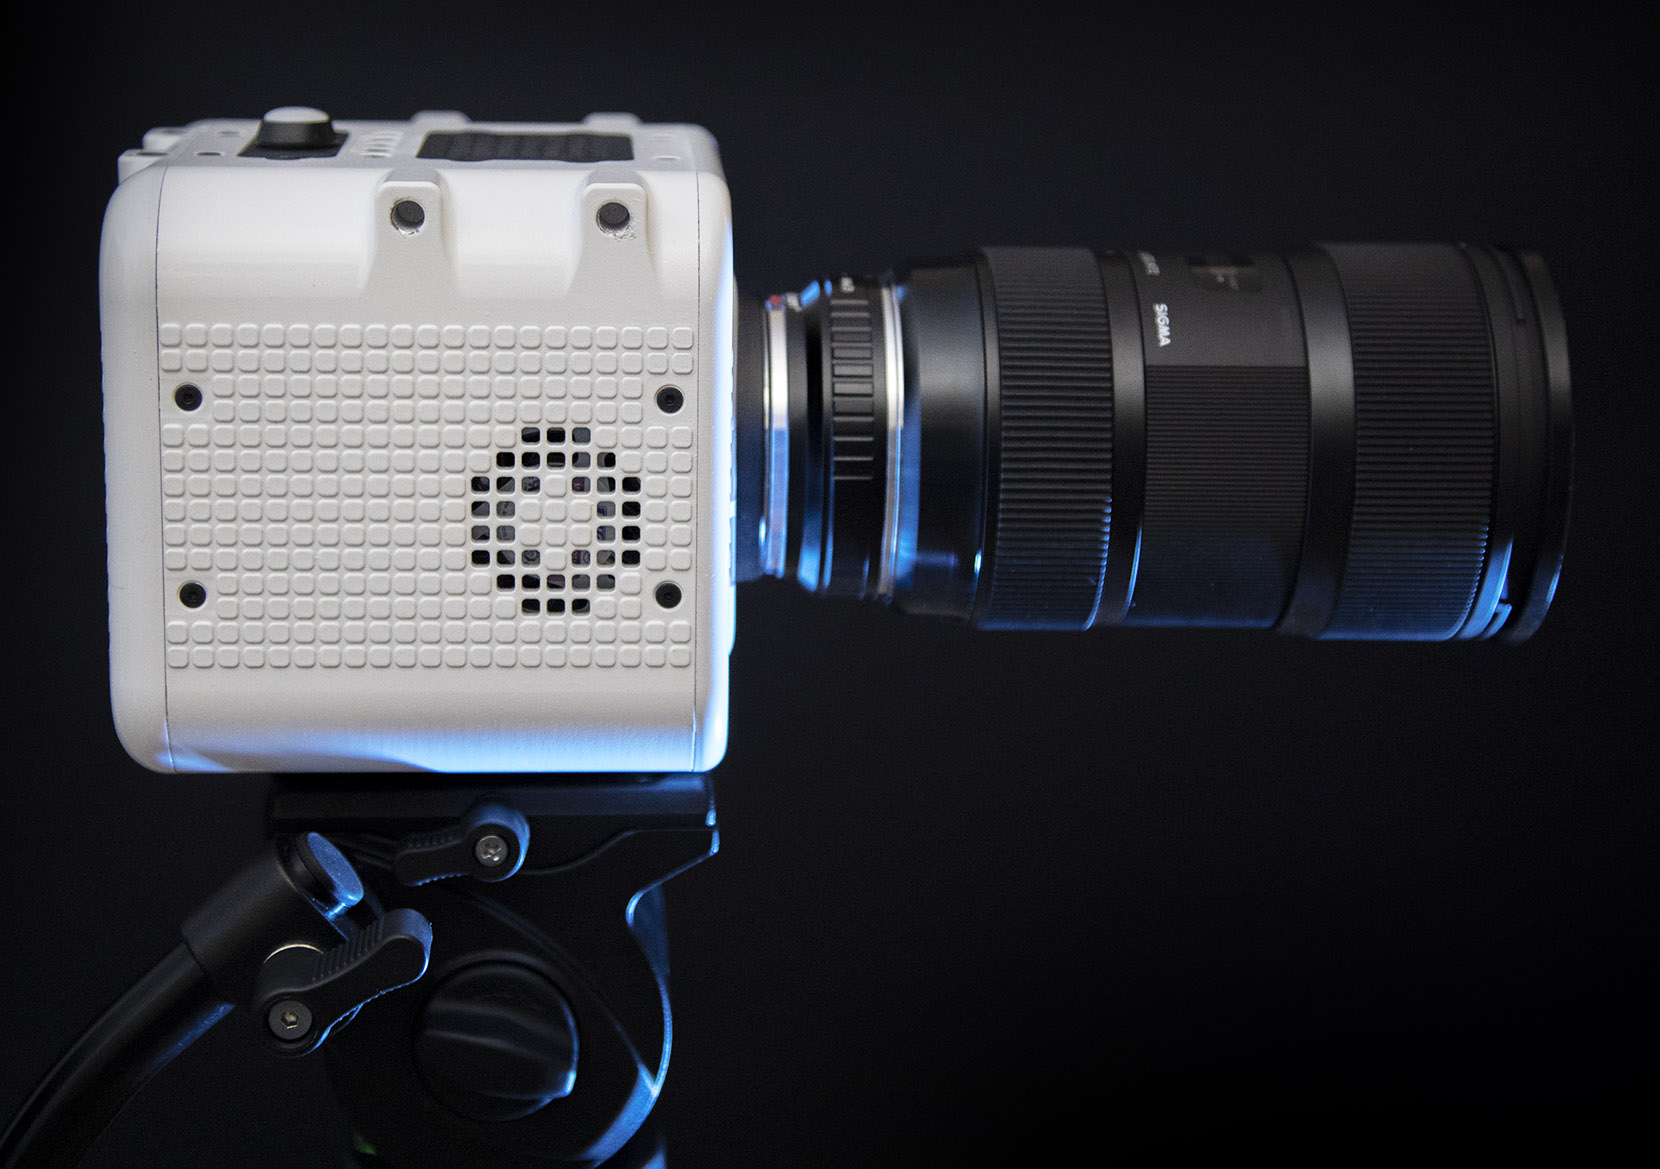 Octopus camera made from standard components - now with 8K RAW promise